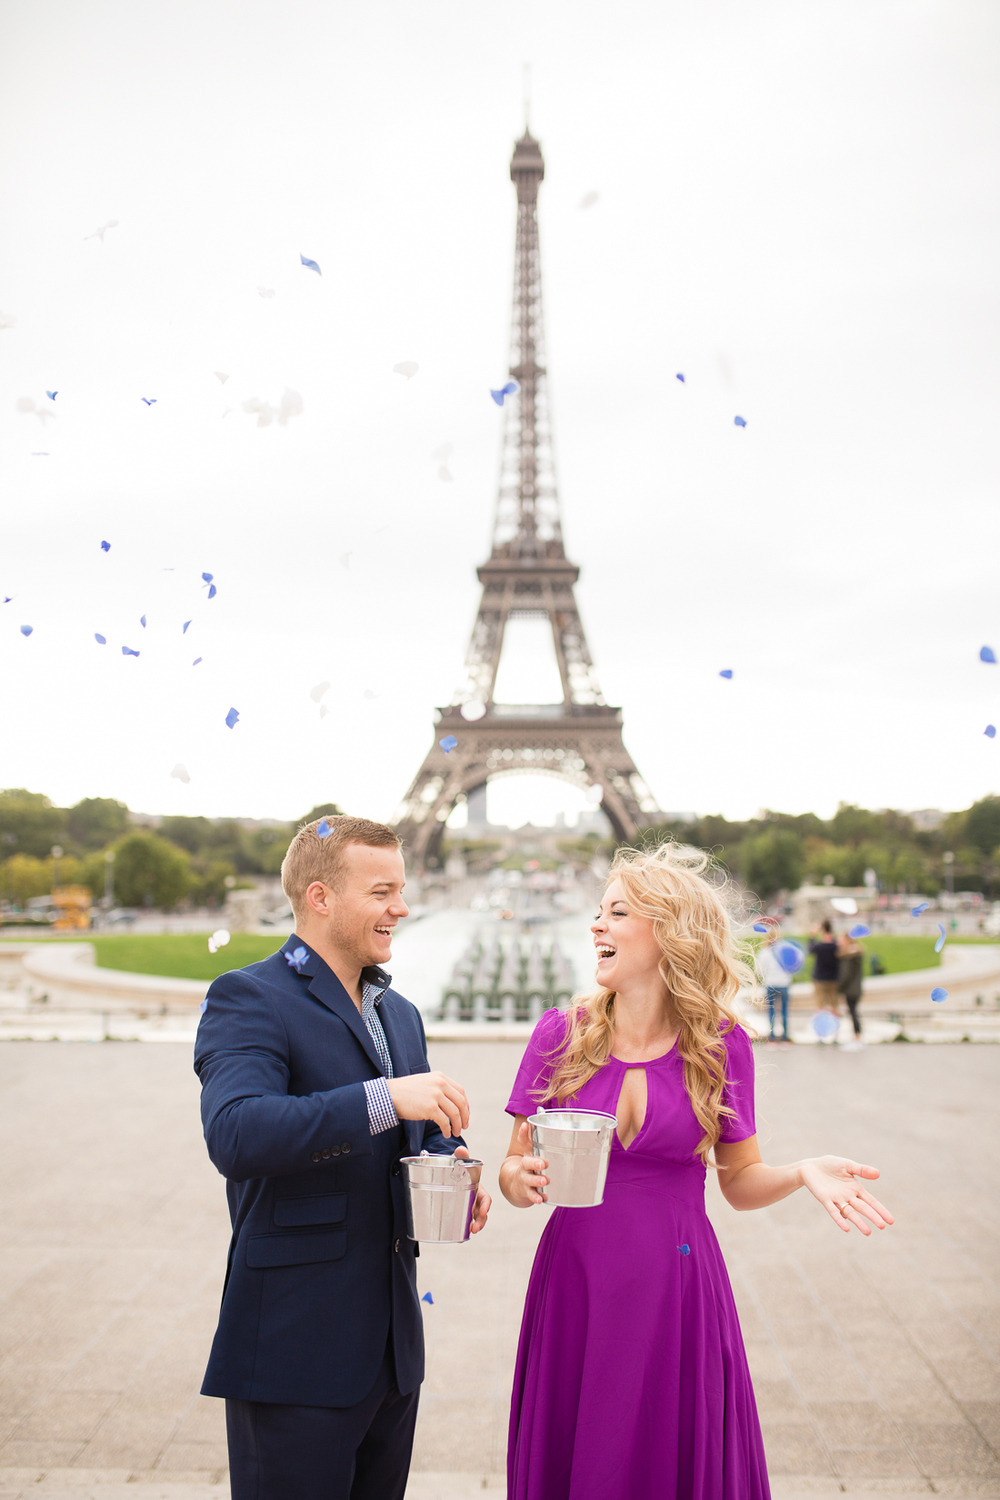 creative-paris-eiffel-tower-baby-gender-reveal-flowers-1